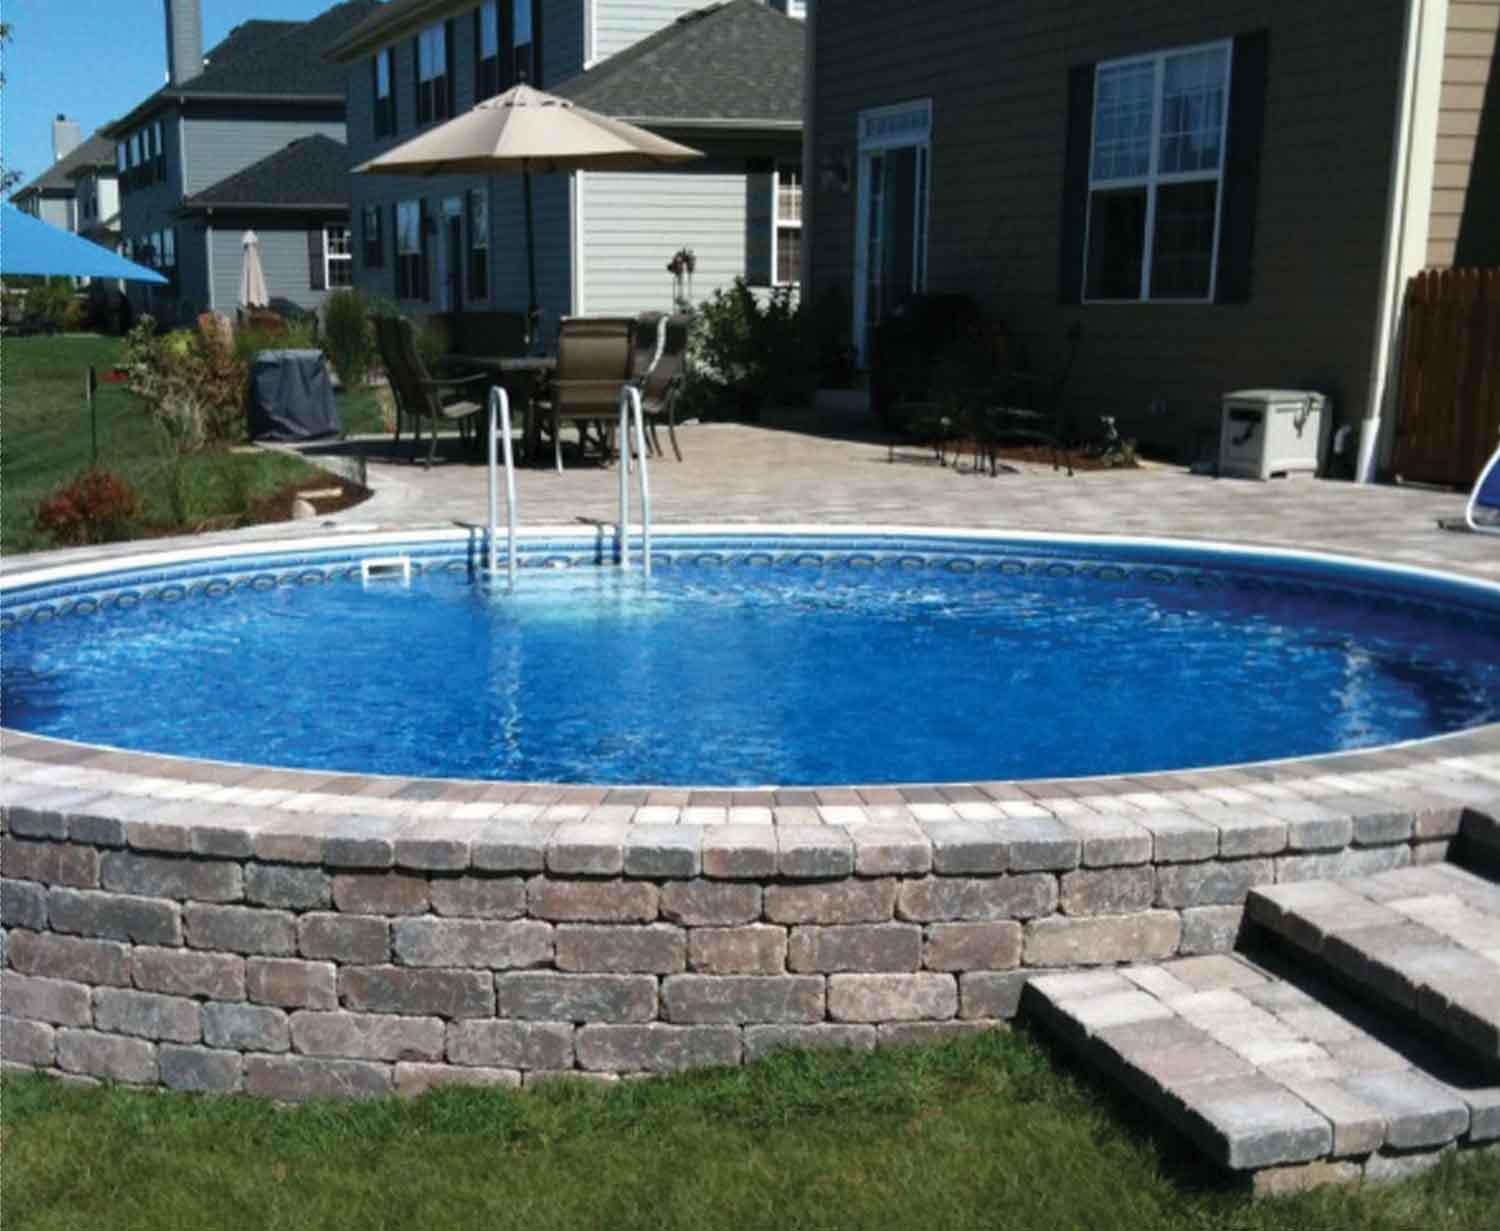 Swimming Pool Ideas With Deck Semi Inground Pool And Its Pros And Cons Semi Inground Pool Decks